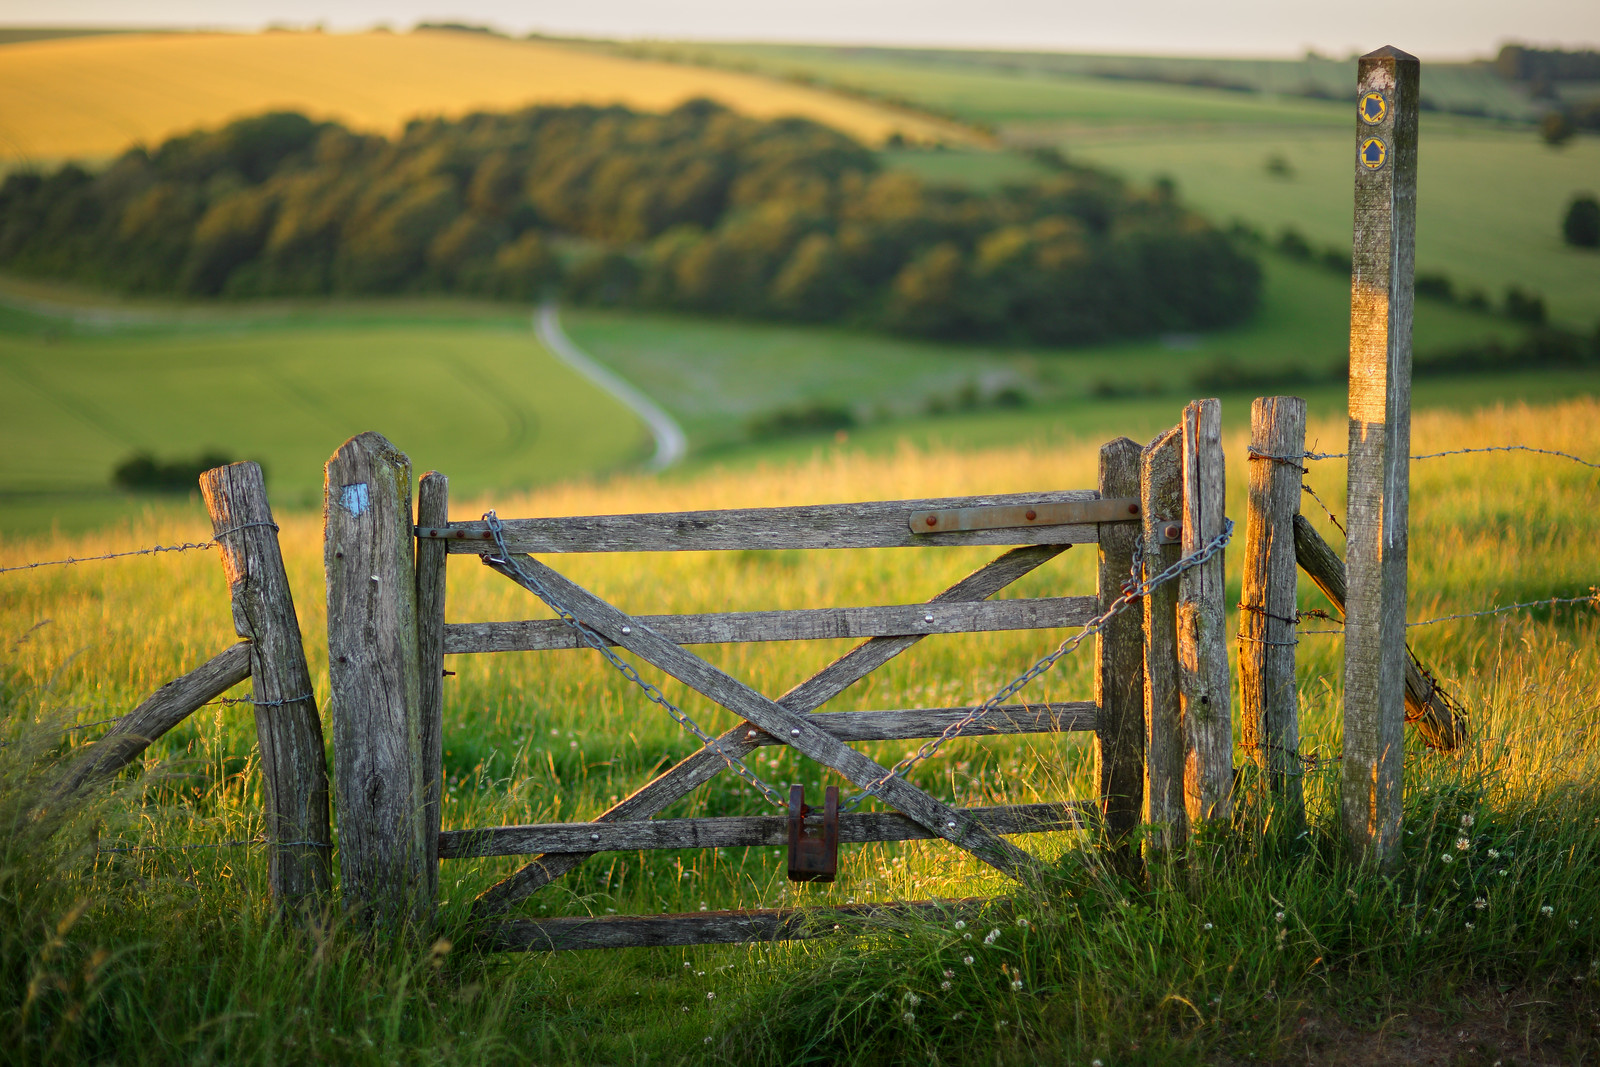 South Downs Gate - 85mm f1.4